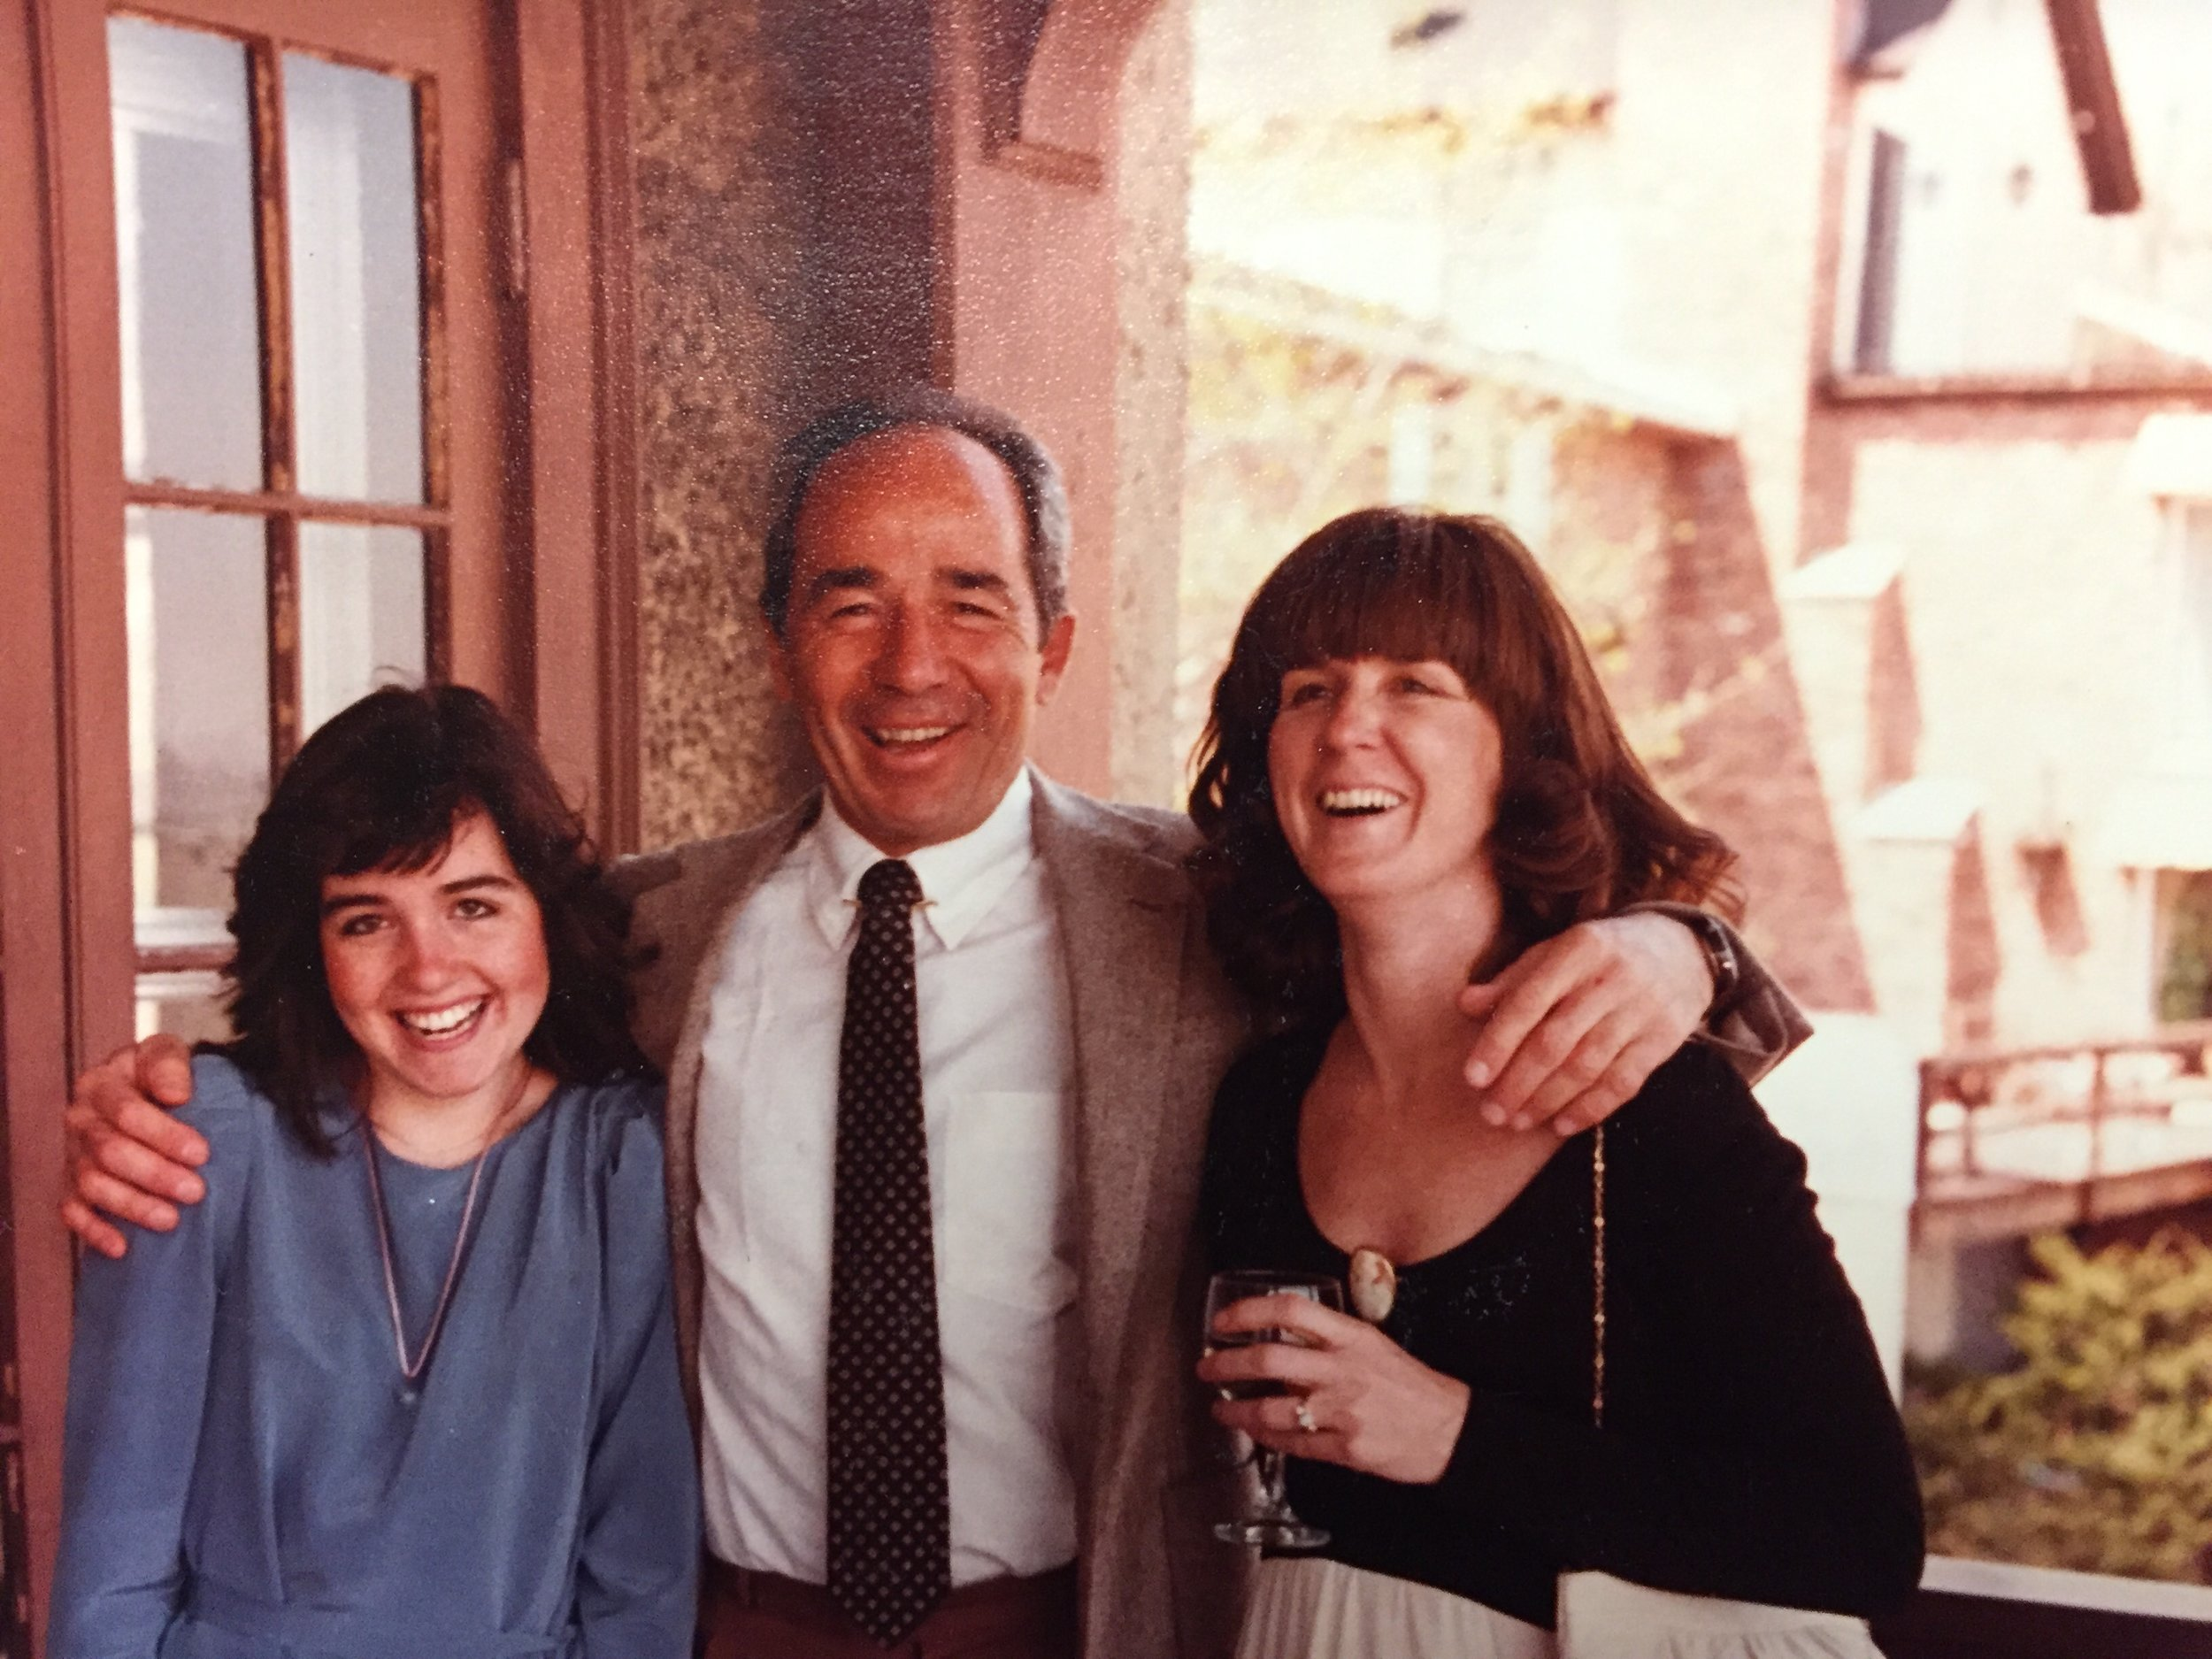 From left: Dr. Roberts's daughter Dory, Manocchio and Roberts at a wedding in 1982.  Courtesy of Dr. Barbara Roberts.